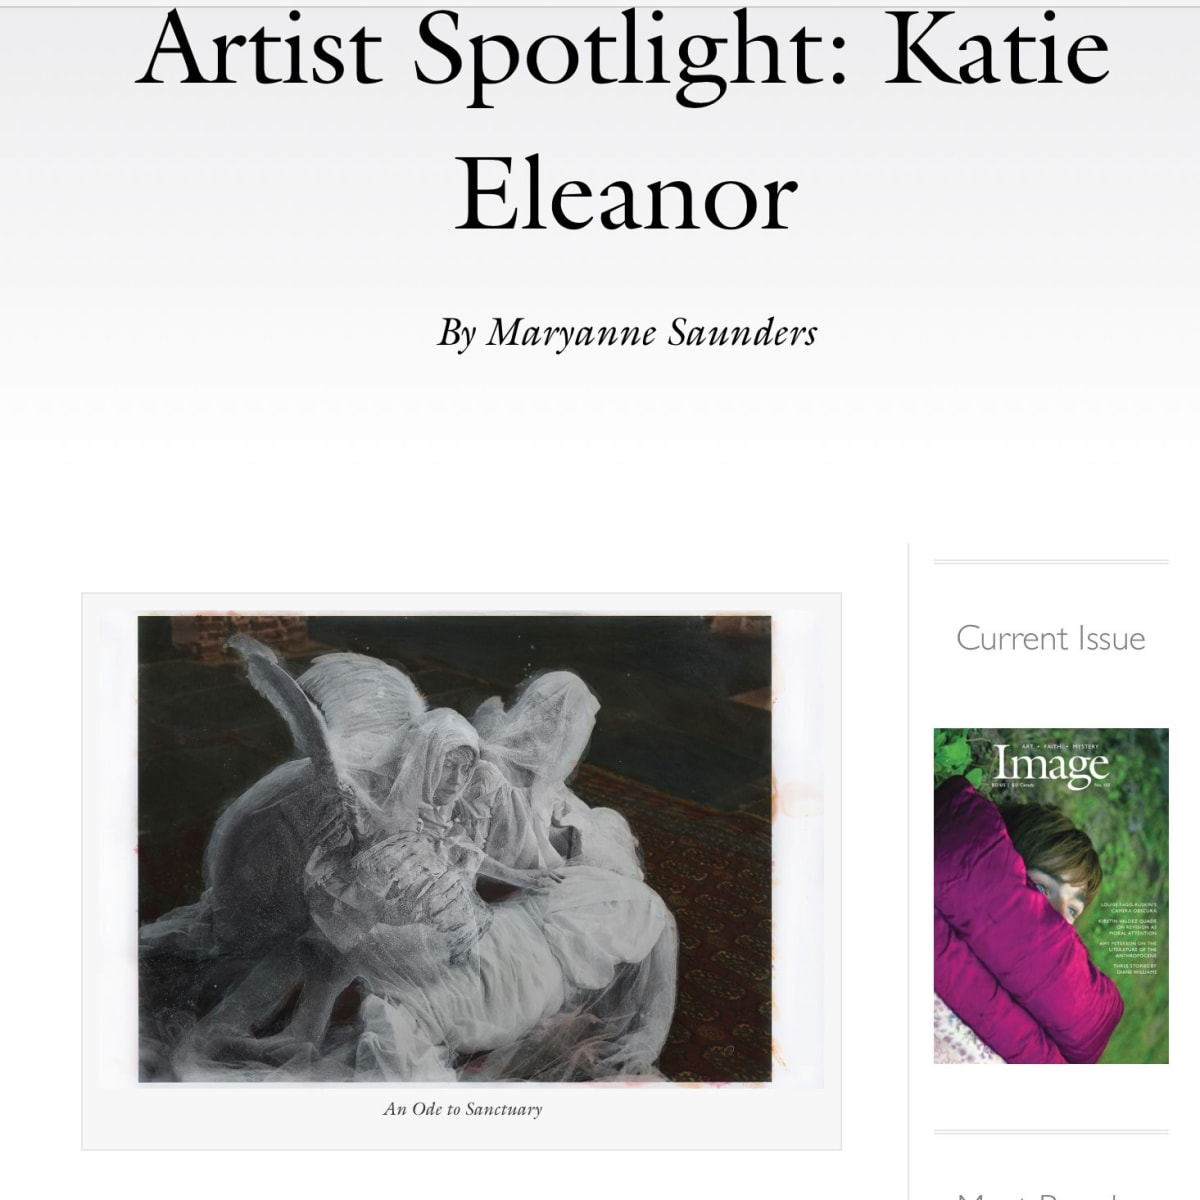 Artist Spotlight: Katie Eleanor